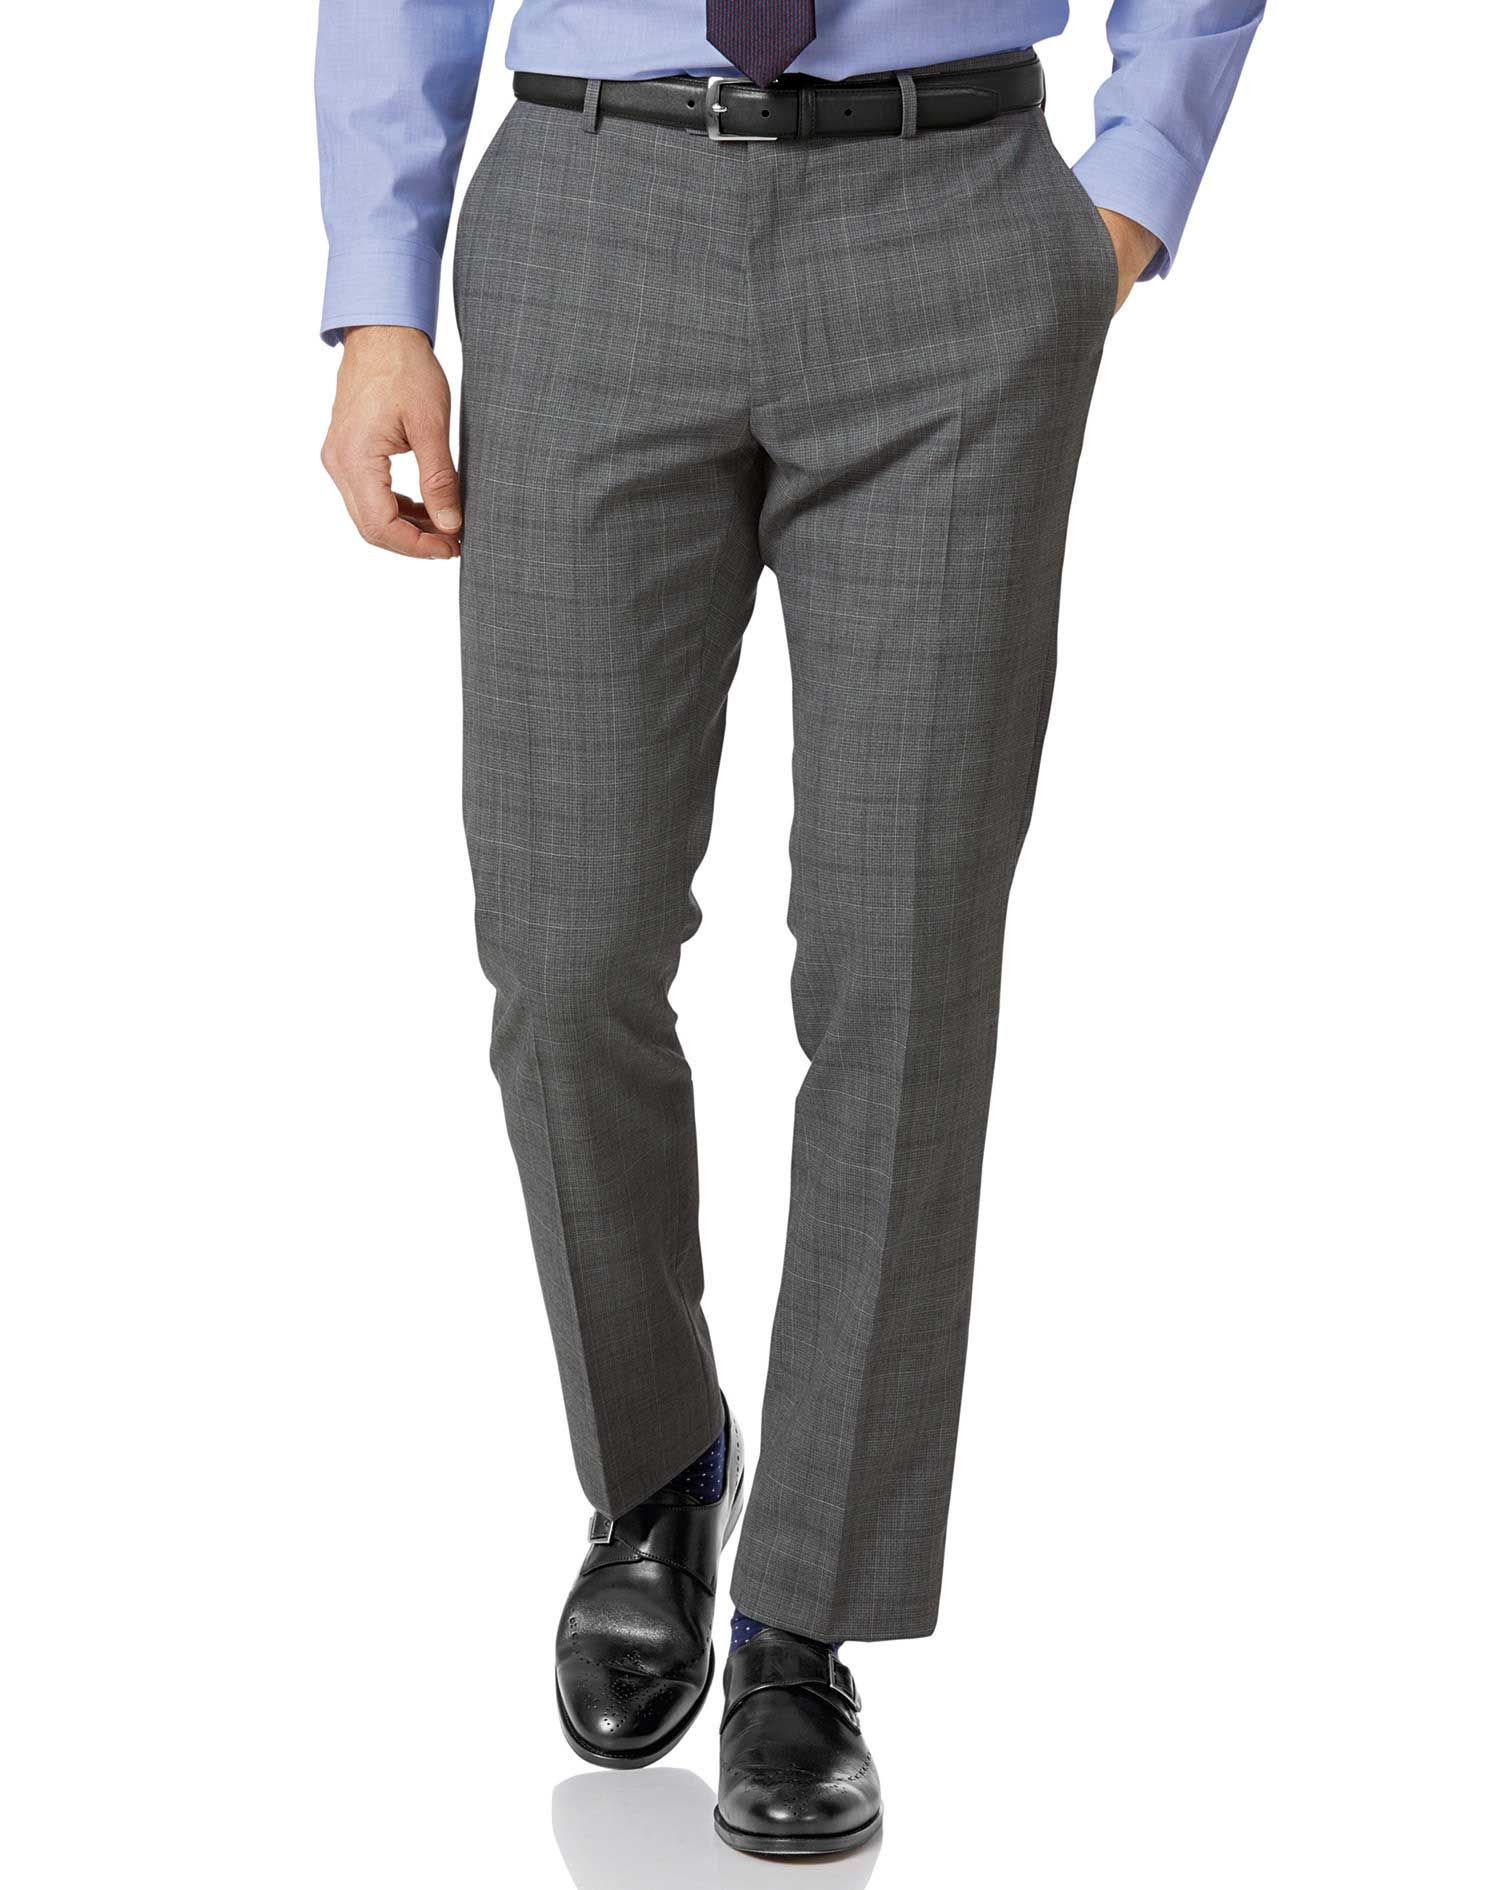 Light Grey Check Slim Fit Twist Business Suit Trouser Size W32 L34 by Charles Tyrwhitt